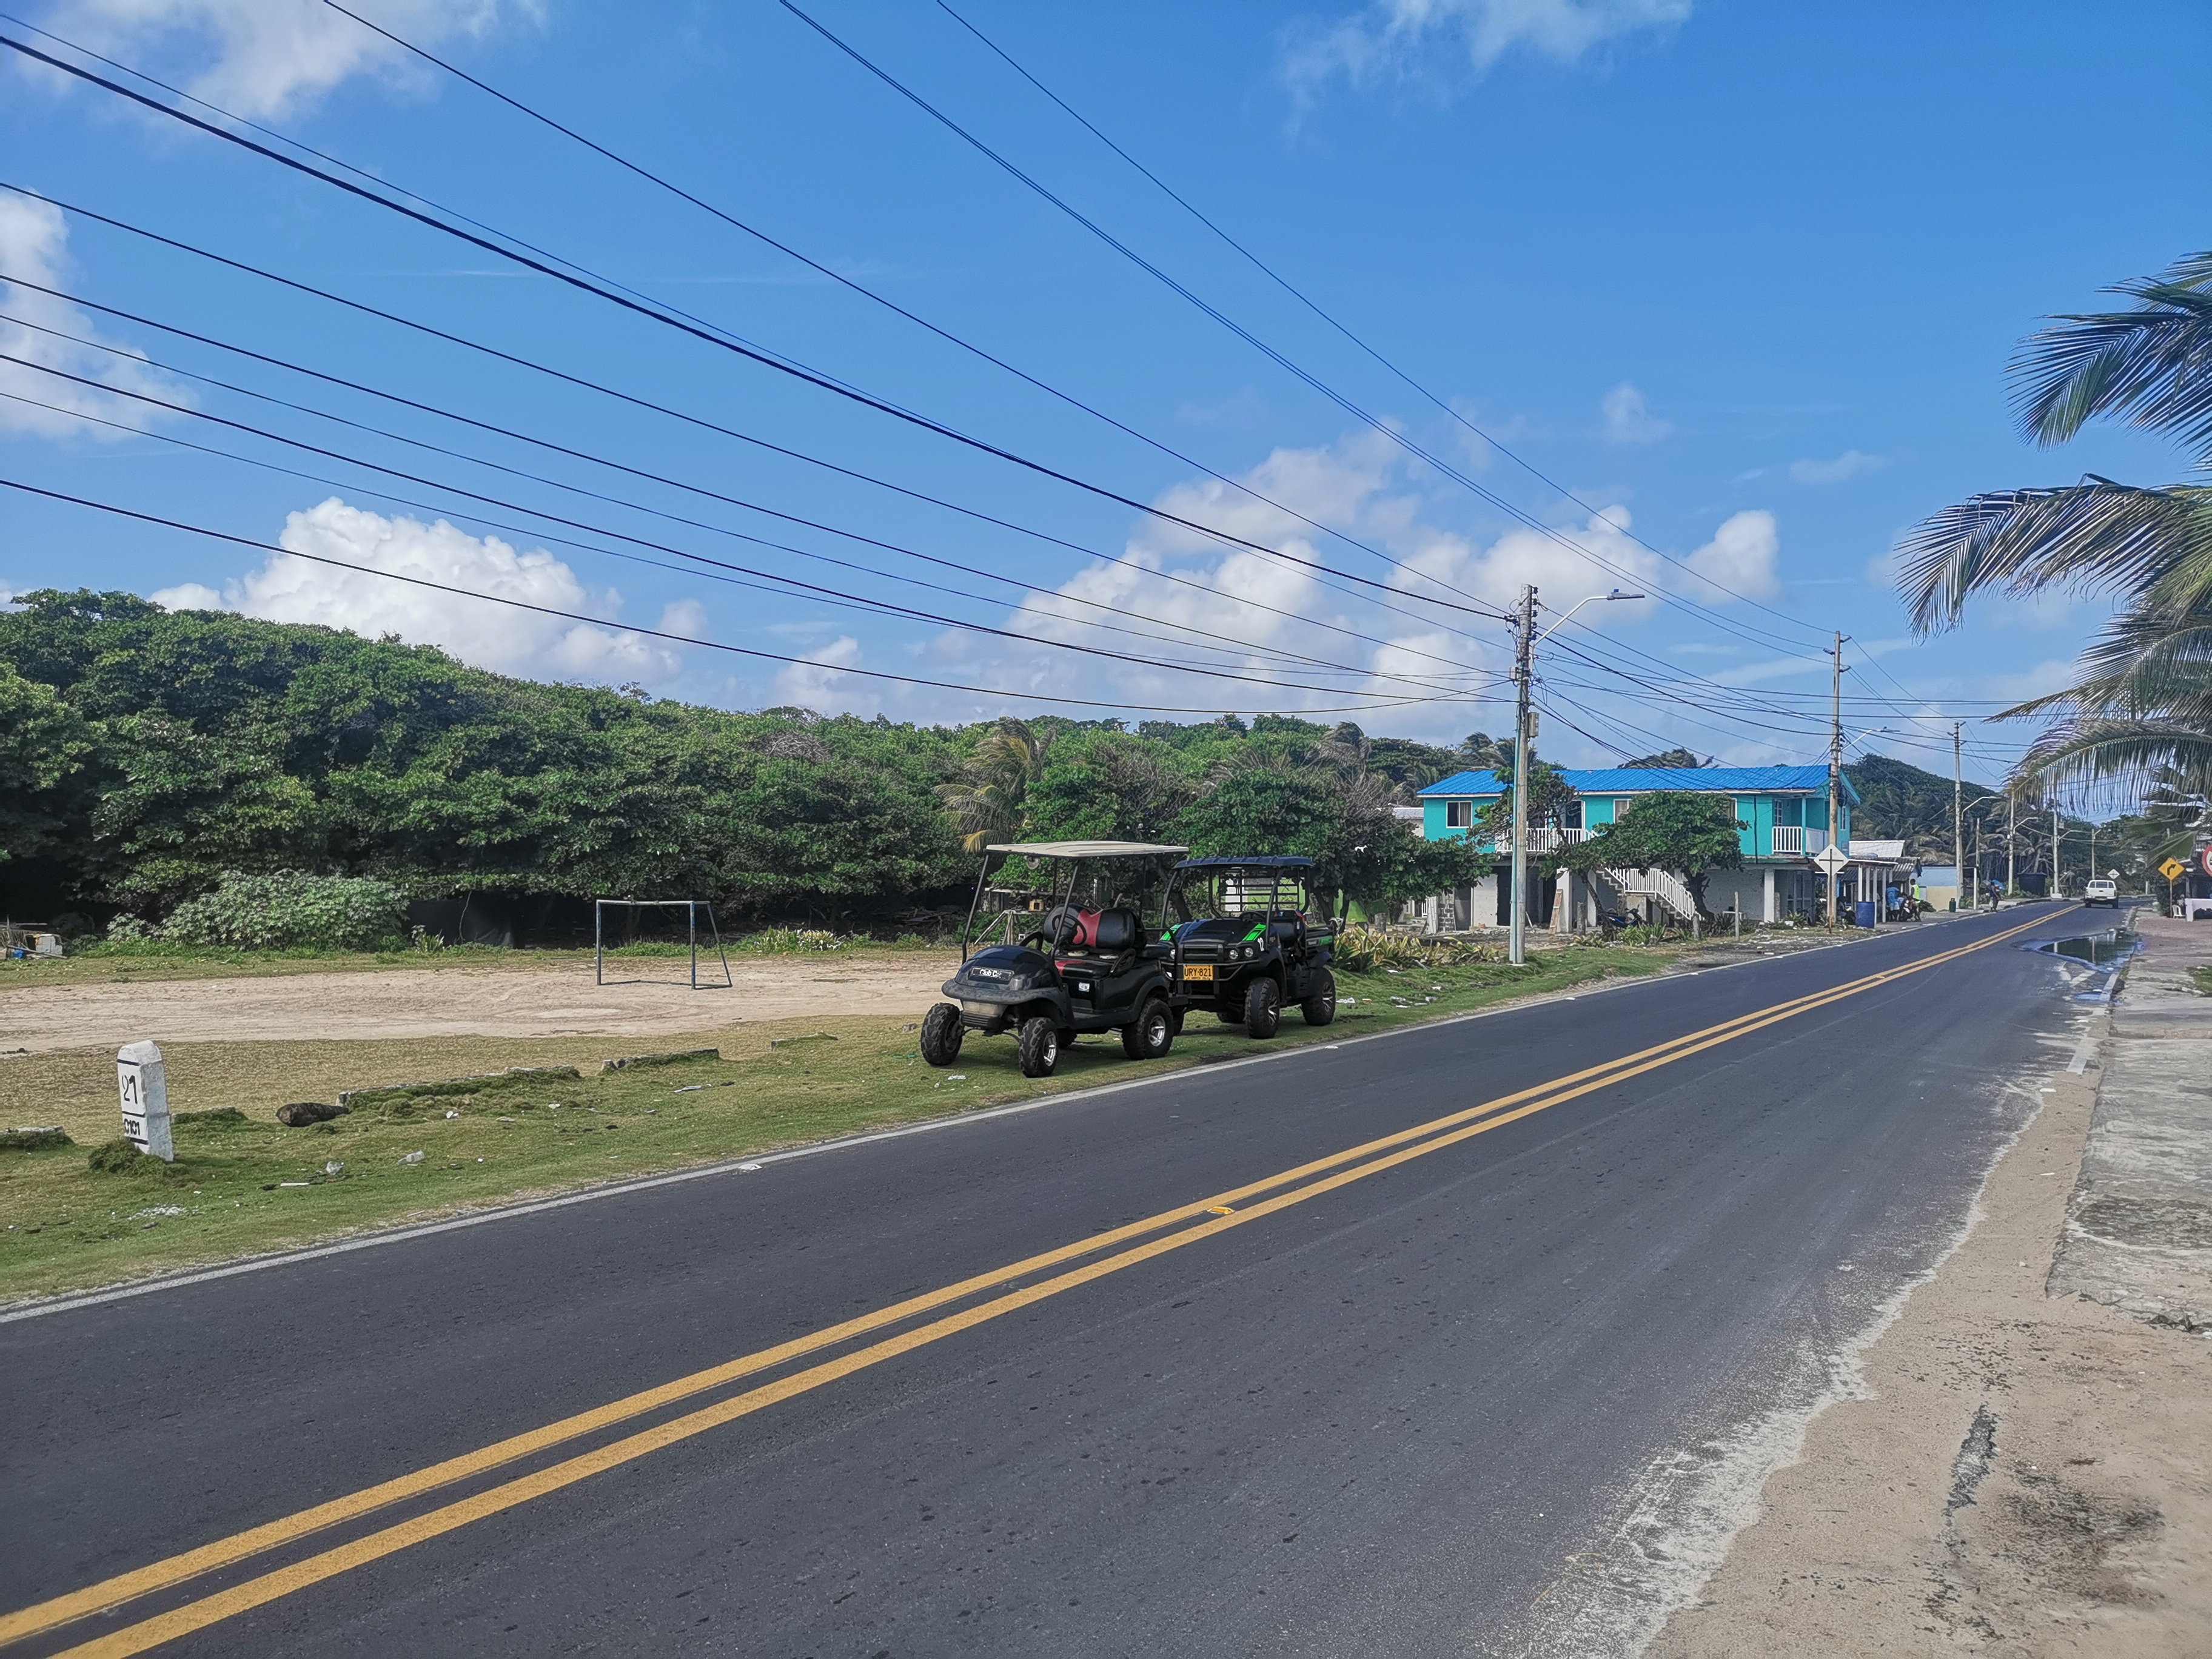 san-andres-island-ultimate-guide